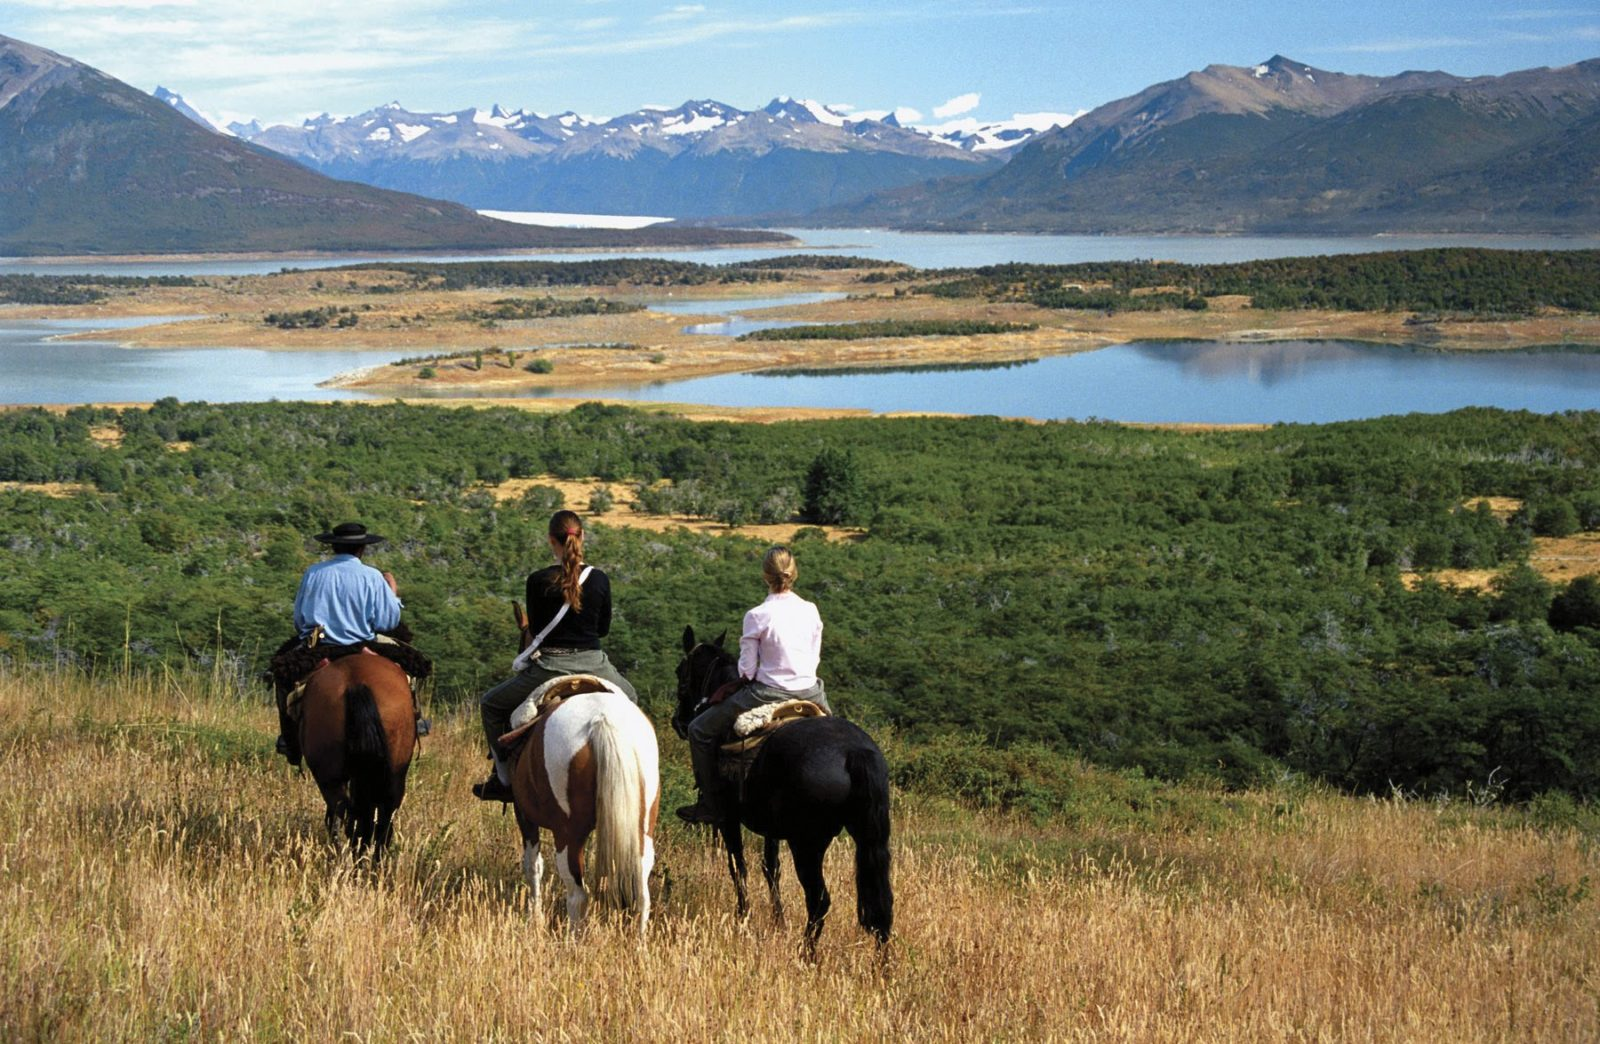 family on horses looking at mountains in patagonia